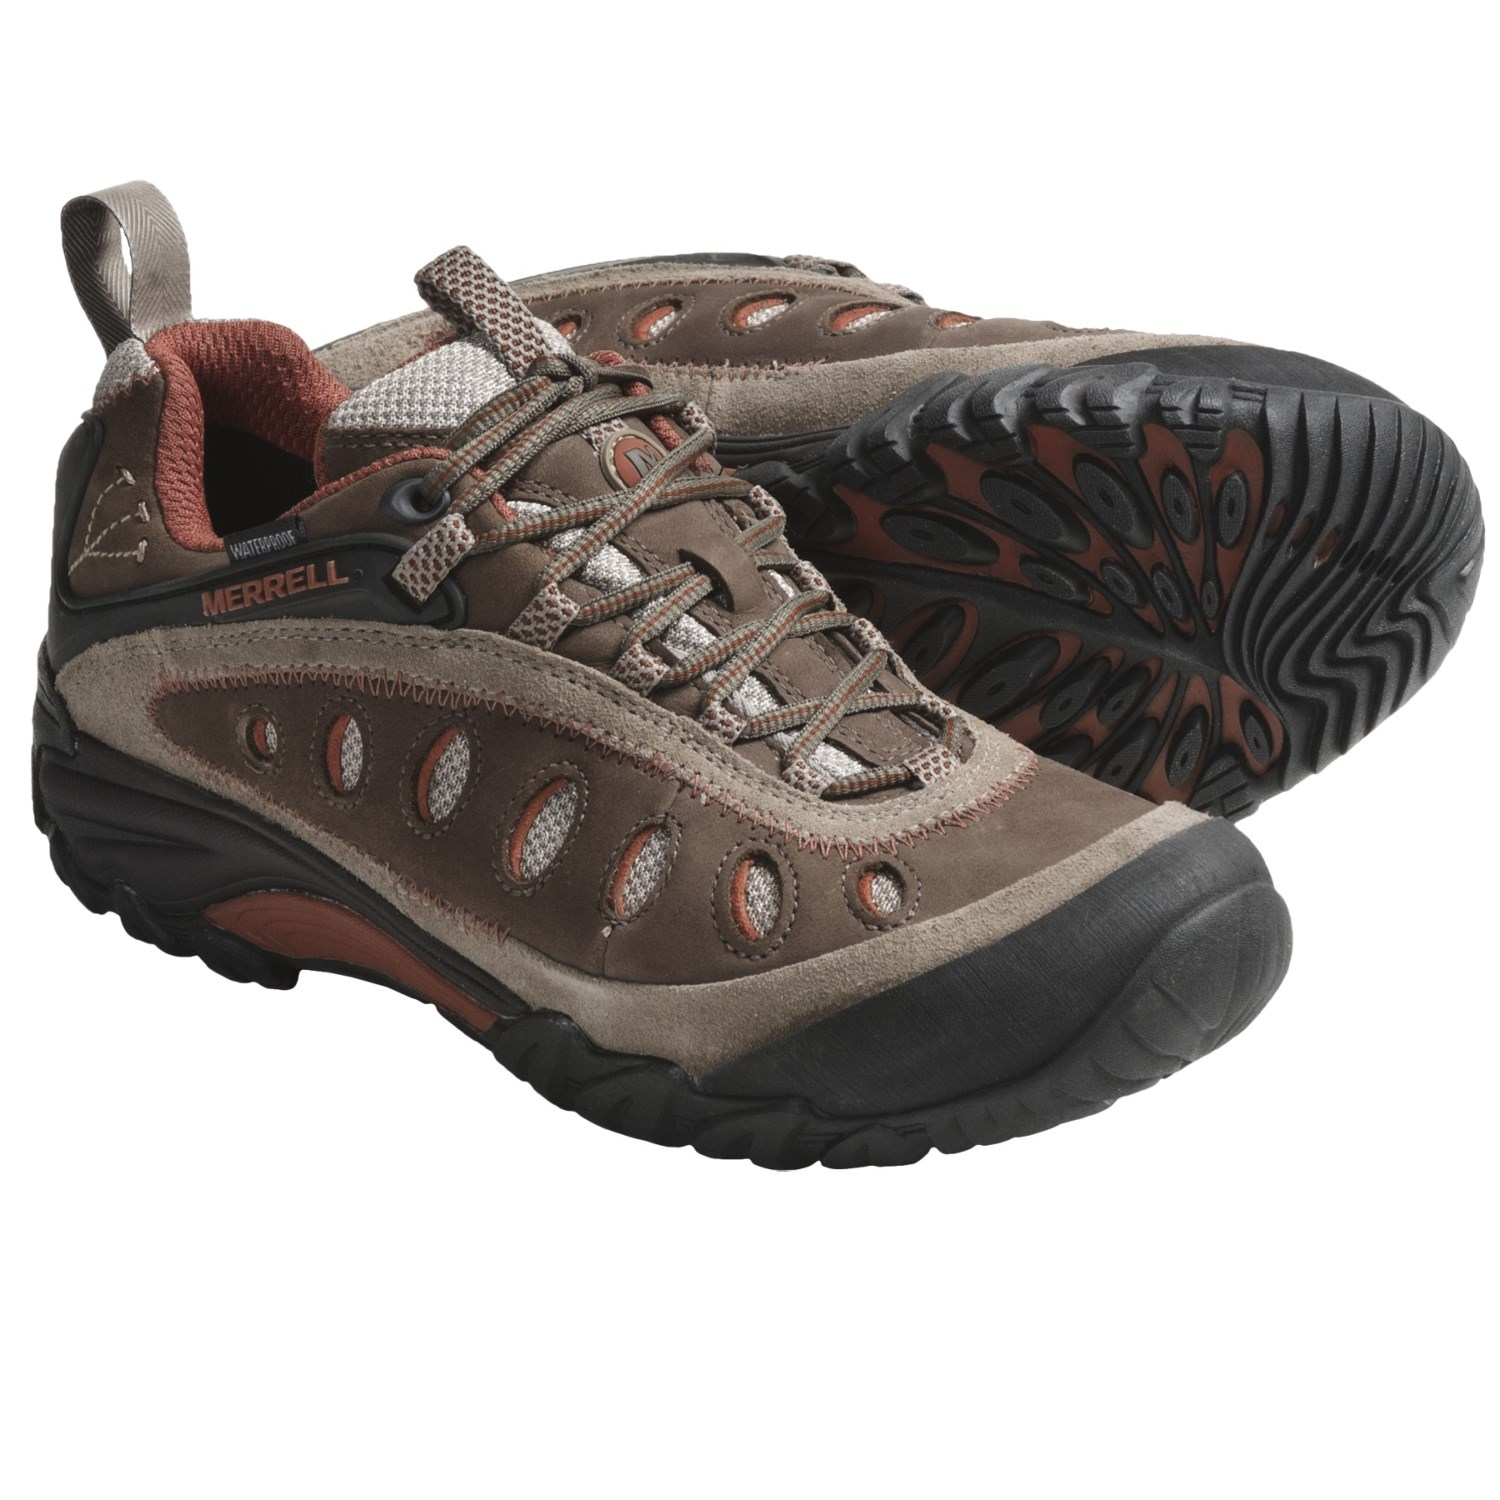 Green Merrell Waterpro Maipo Women's Walking Mens Shoes Light Trail Outdoors Walking Shoes Clearance Canada MER82